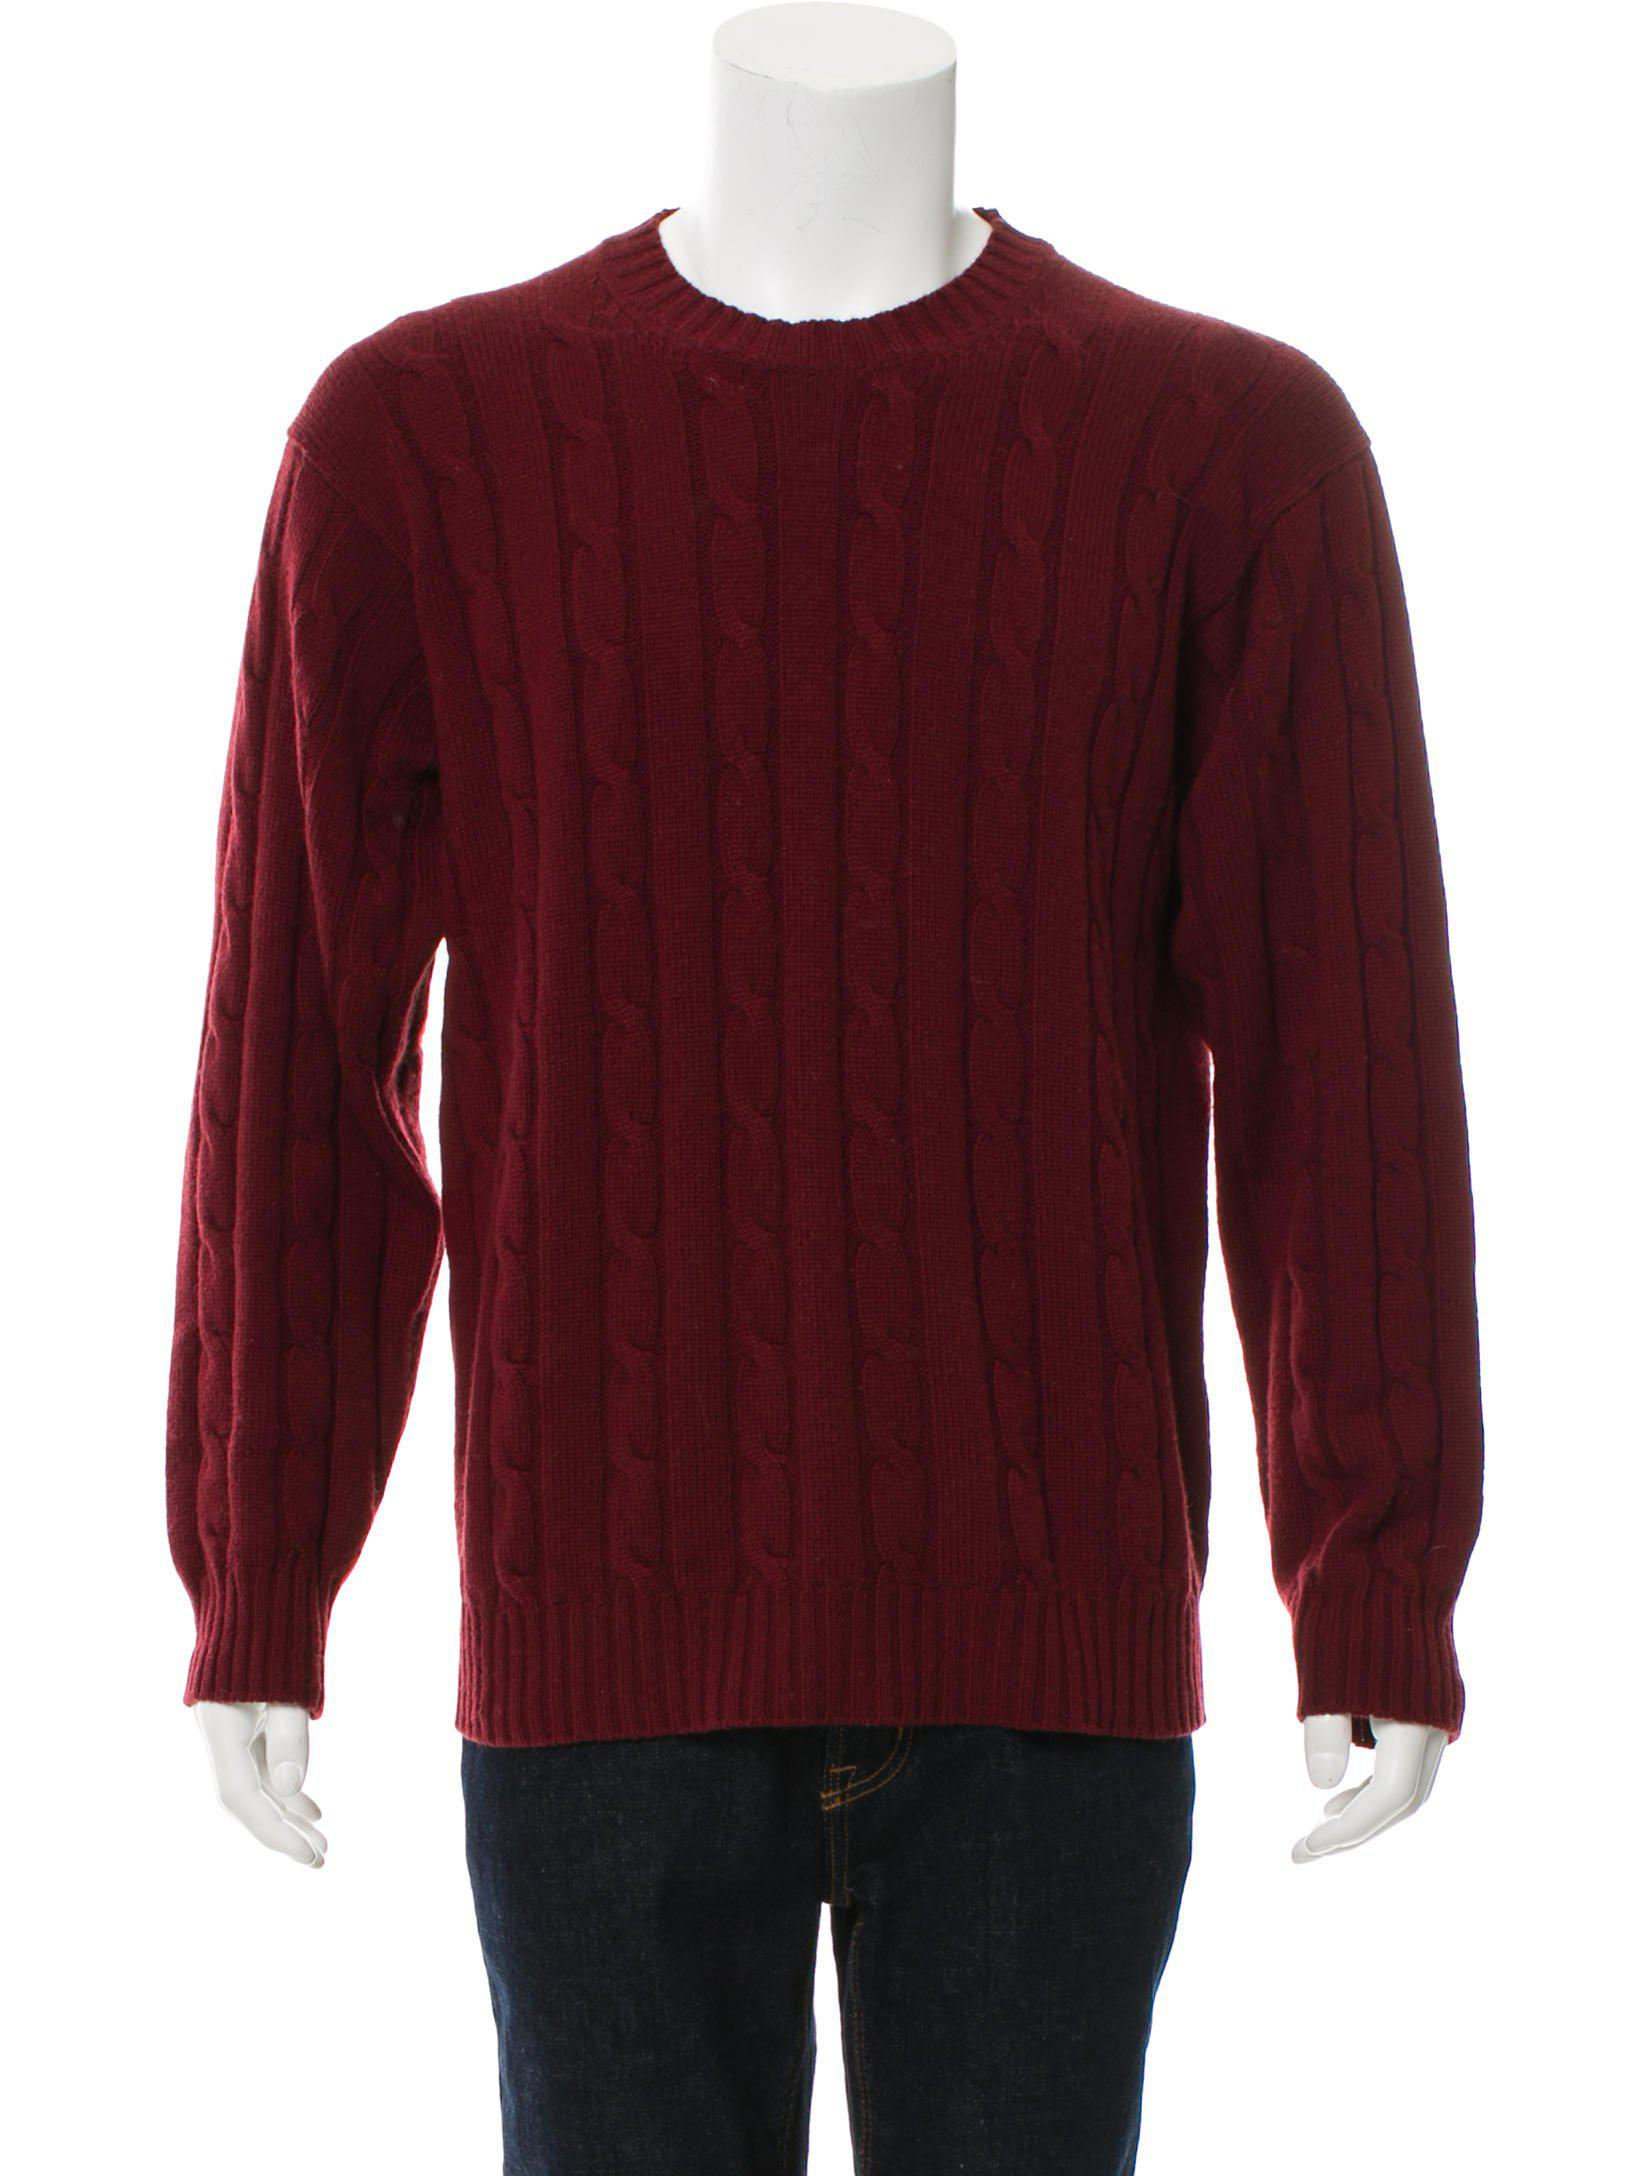 Lyst Loro Piana Cashmere Cable Knit Sweater Burgundy In Red For Men